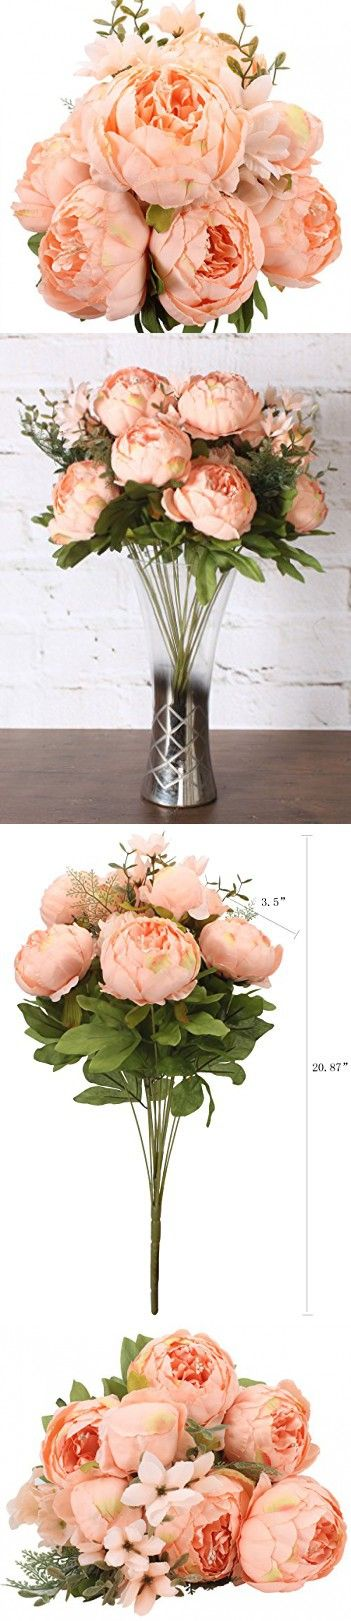 Duovlo Springs Flowers Artificial Silk Peony bouquets Wedding Home Decoration,Pack of 1 (Spring Orange-pink)